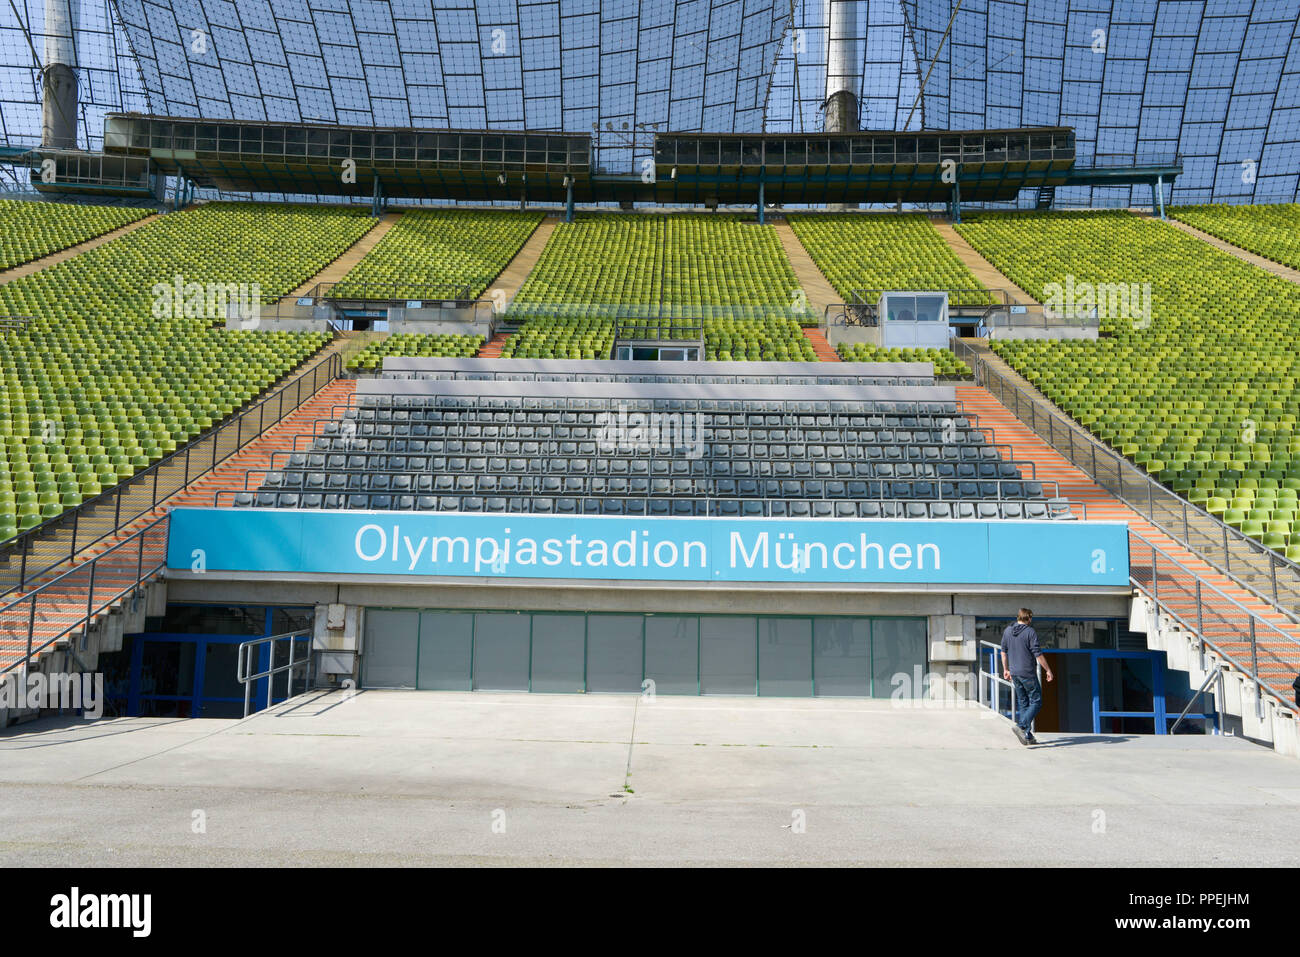 Stand In The Olympic Stadium In The Olympic Park In Munich Stock Photo Alamy